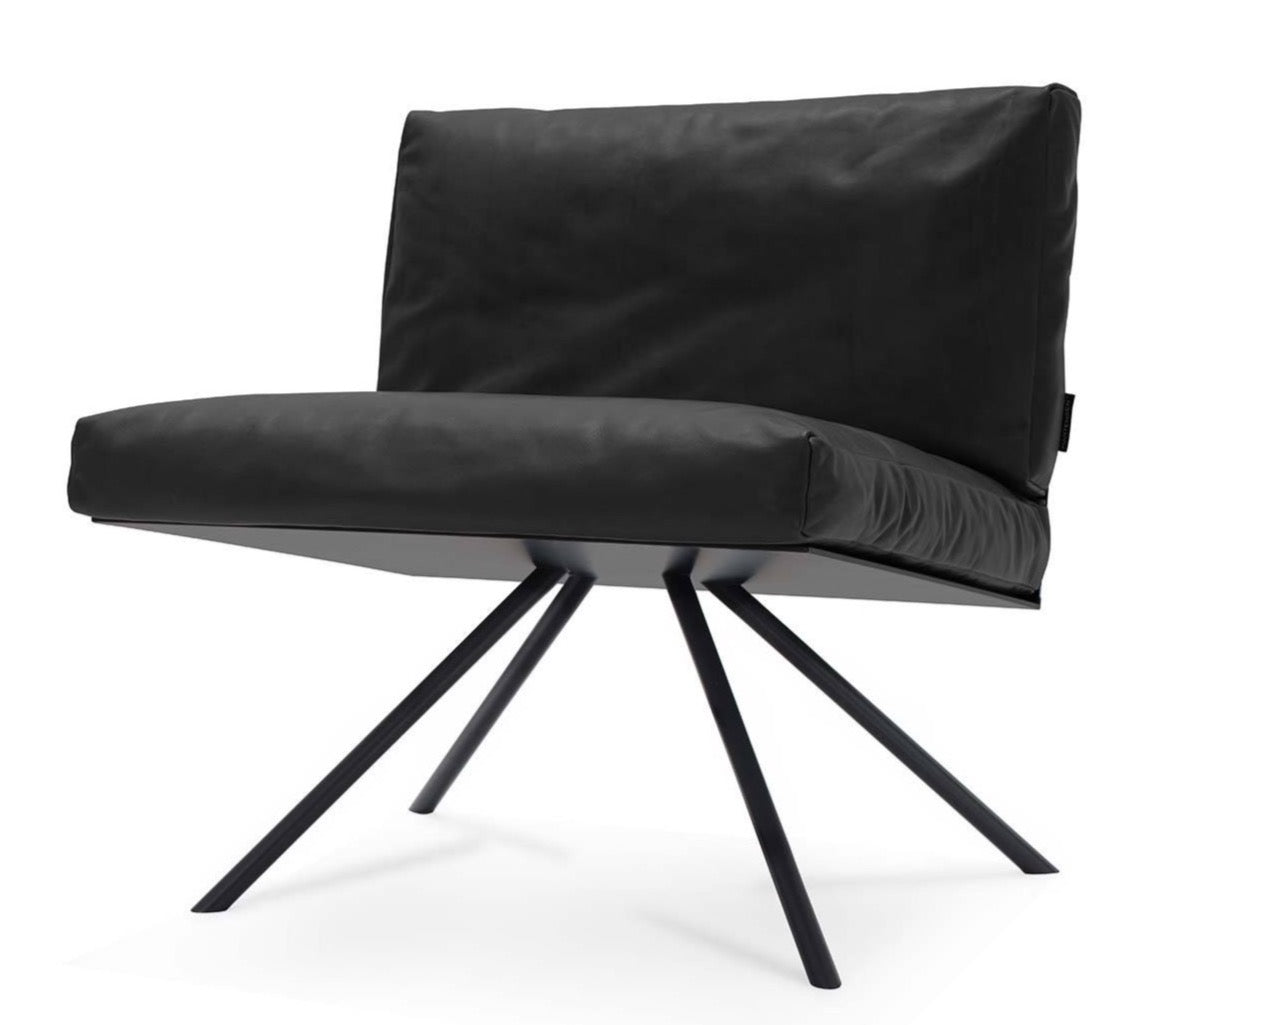 k200 Lounge Chair